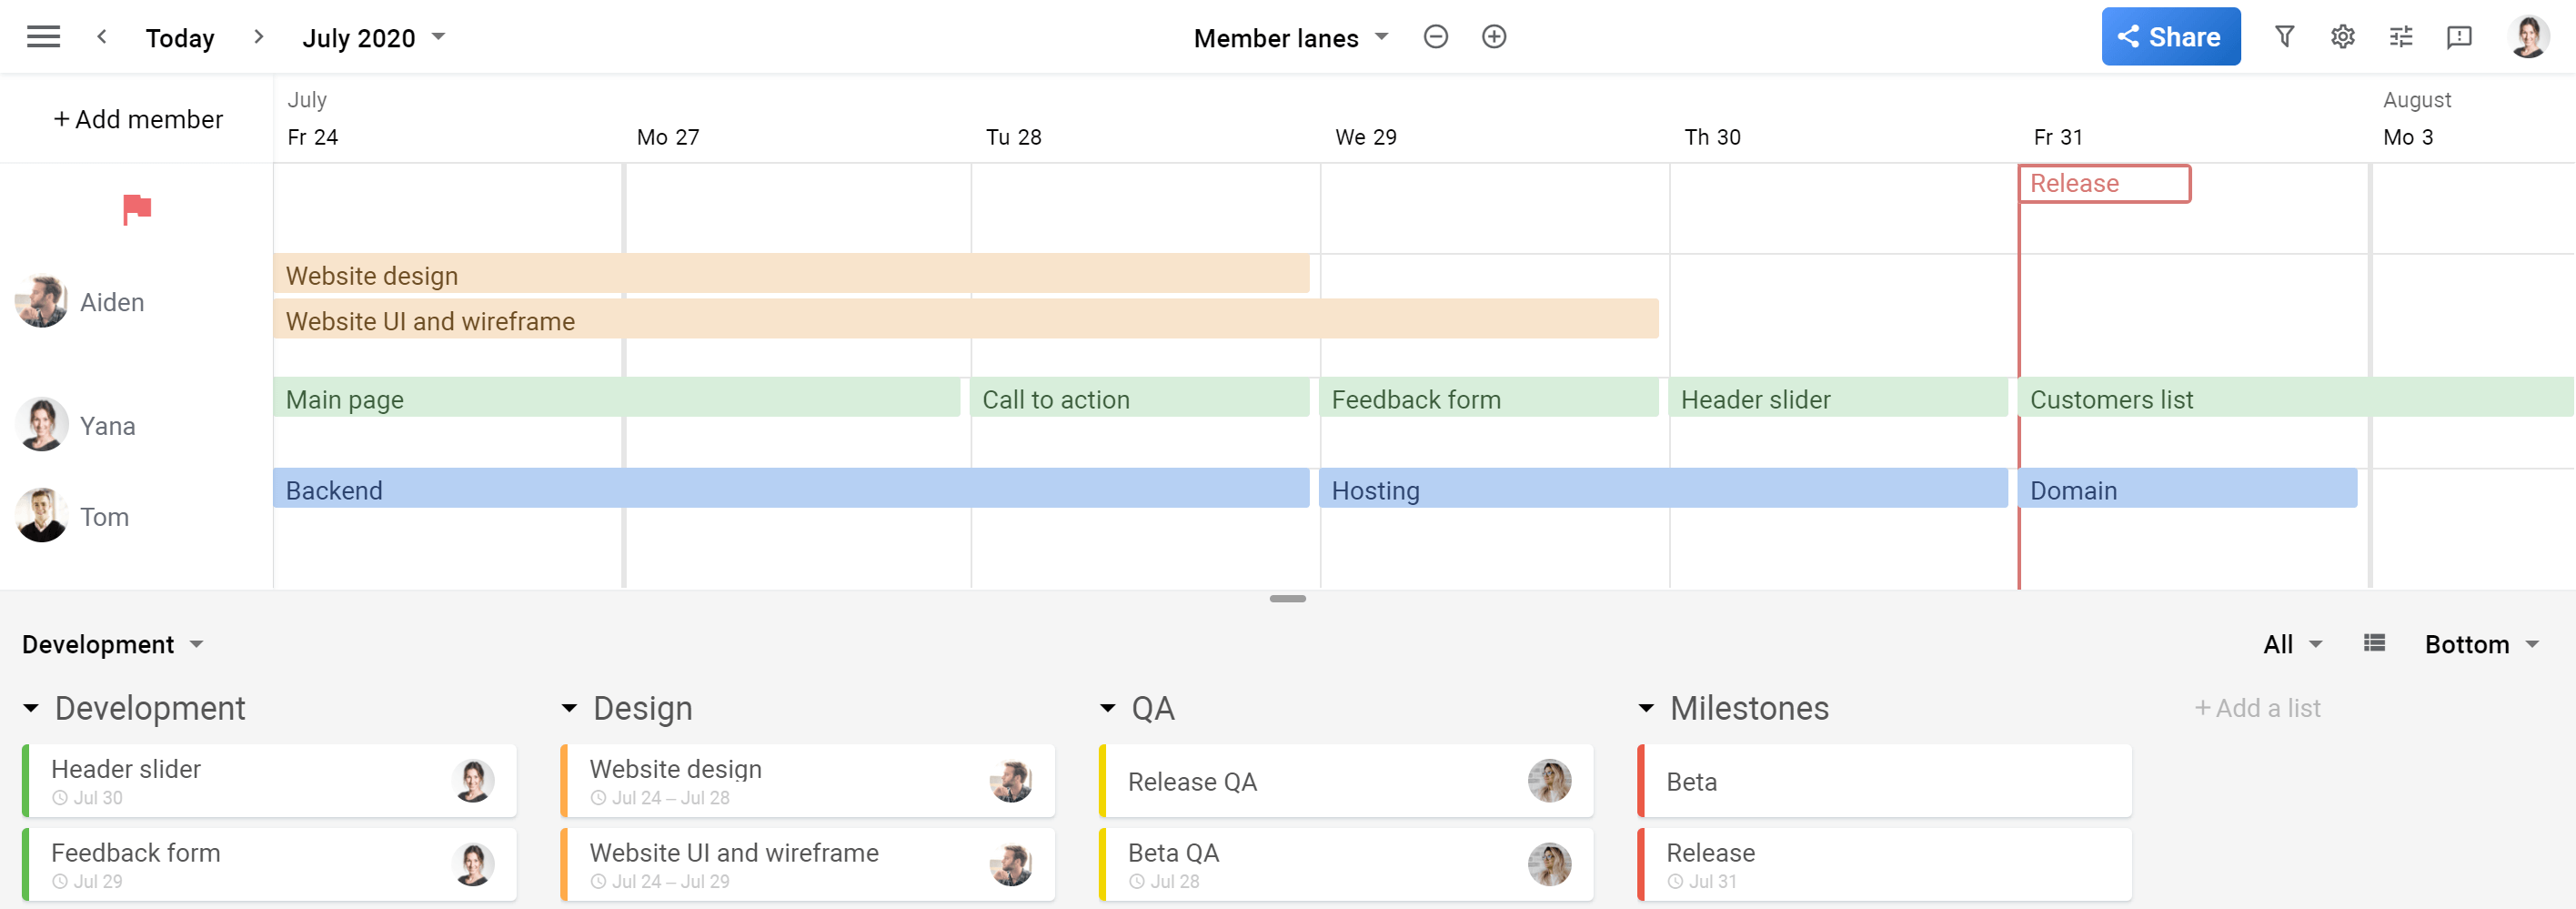 Planyway Team timeline